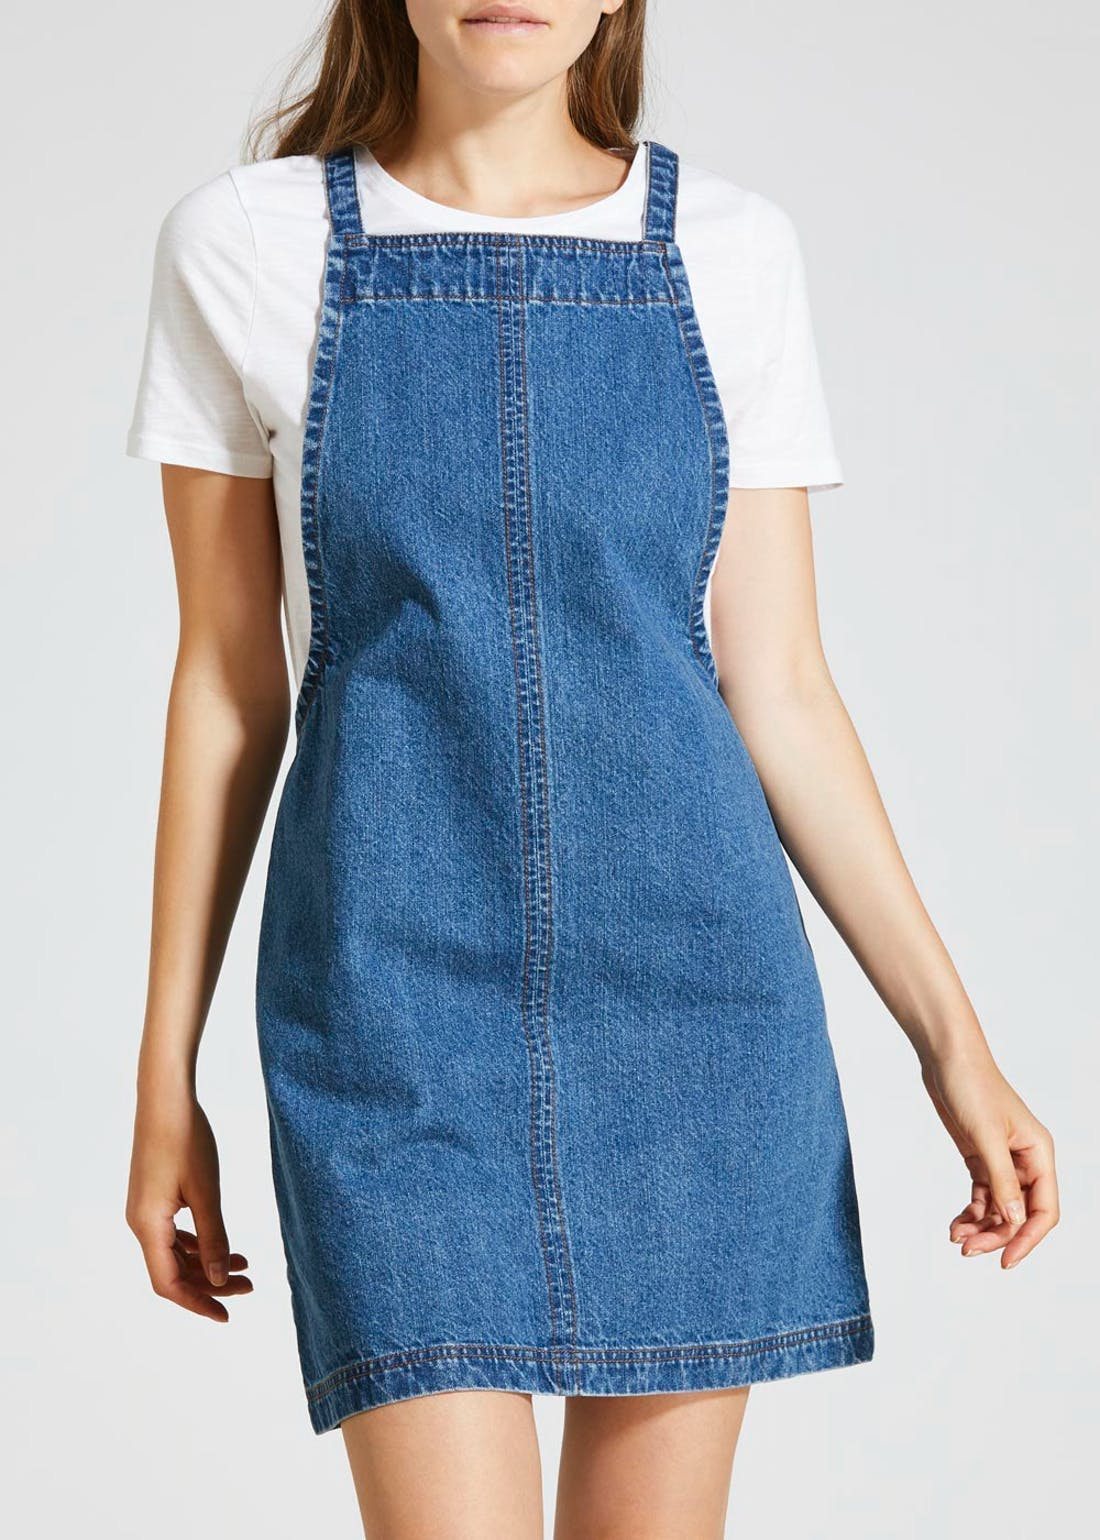 Denim Pinafore - Midwash